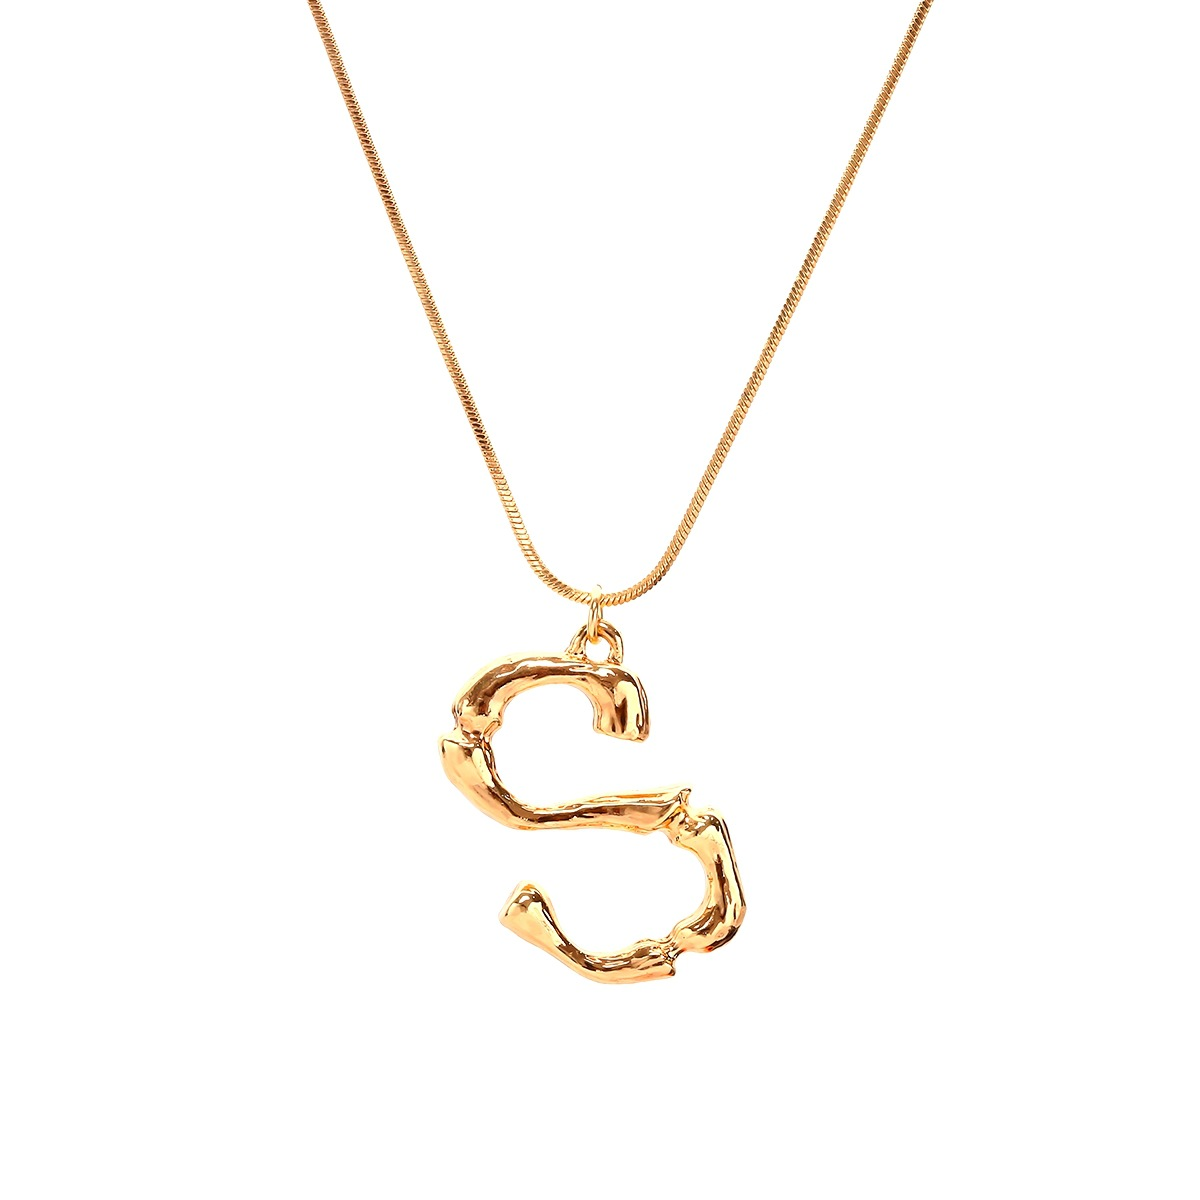 Alloy Simple Geometric necklace  (Letter A alloy 2163) NHXR2637-Letter-A-alloy-2163